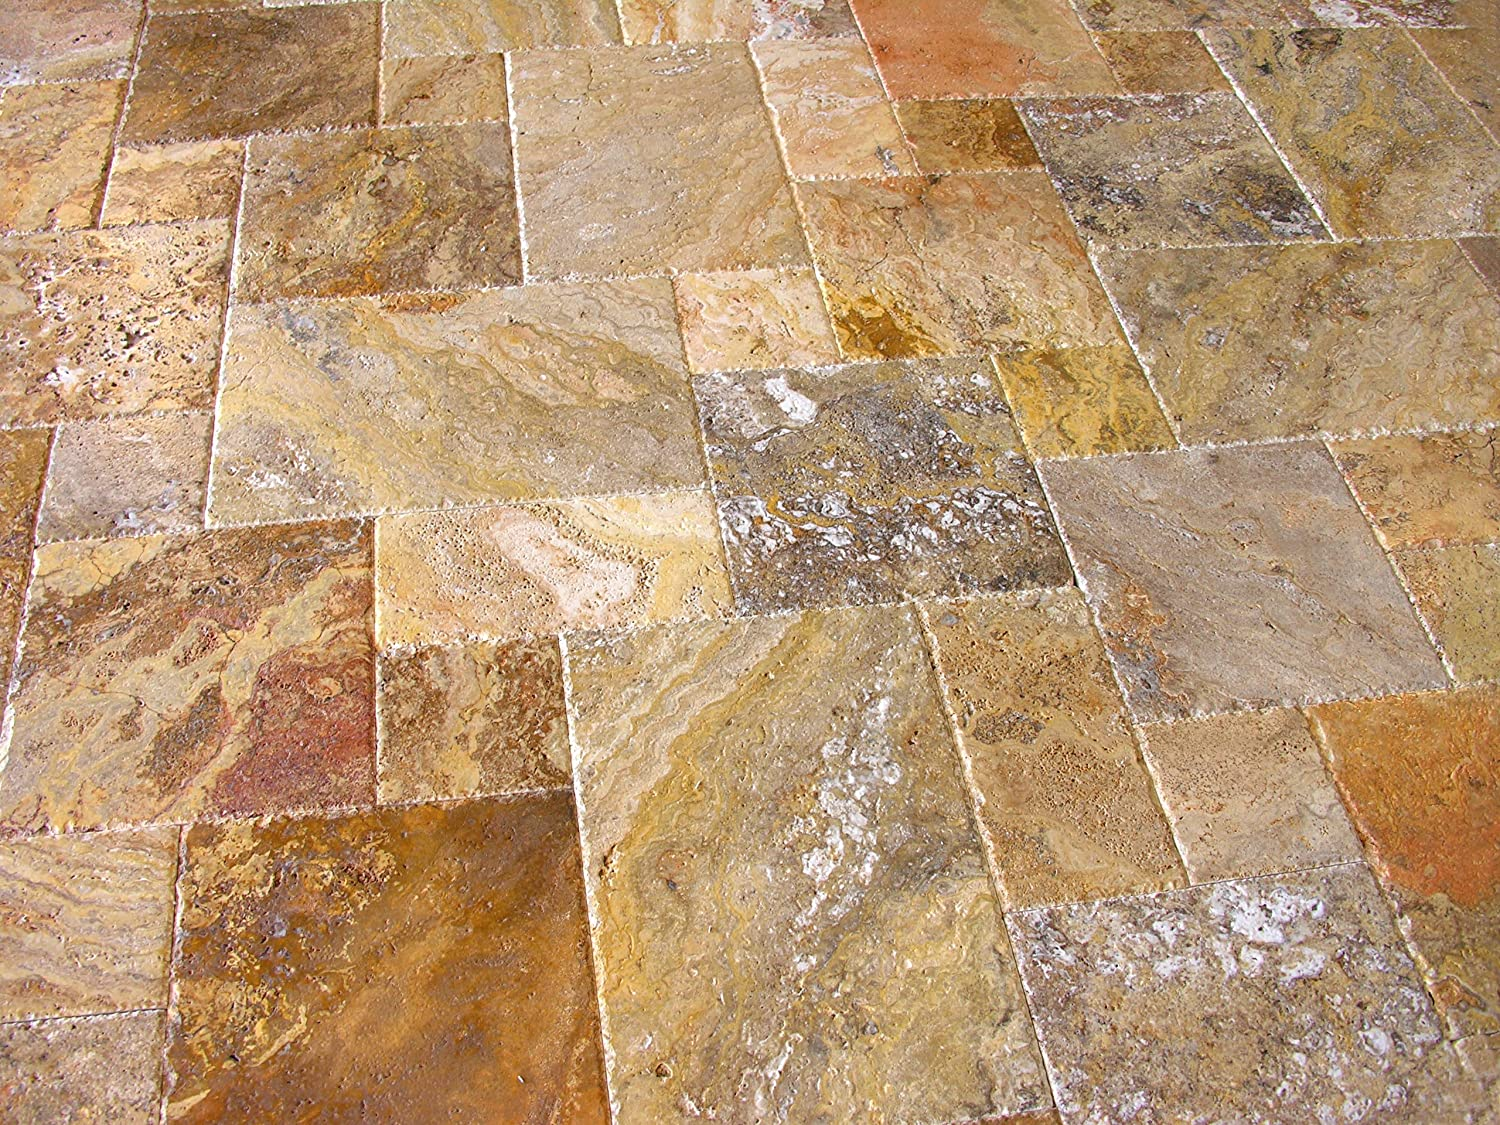 Scabos travertine versailles ashlar pattern tiles unfilled scabos travertine versailles ashlar pattern tiles unfilled brushed chiseled small sample ceramic floor tiles amazon dailygadgetfo Gallery